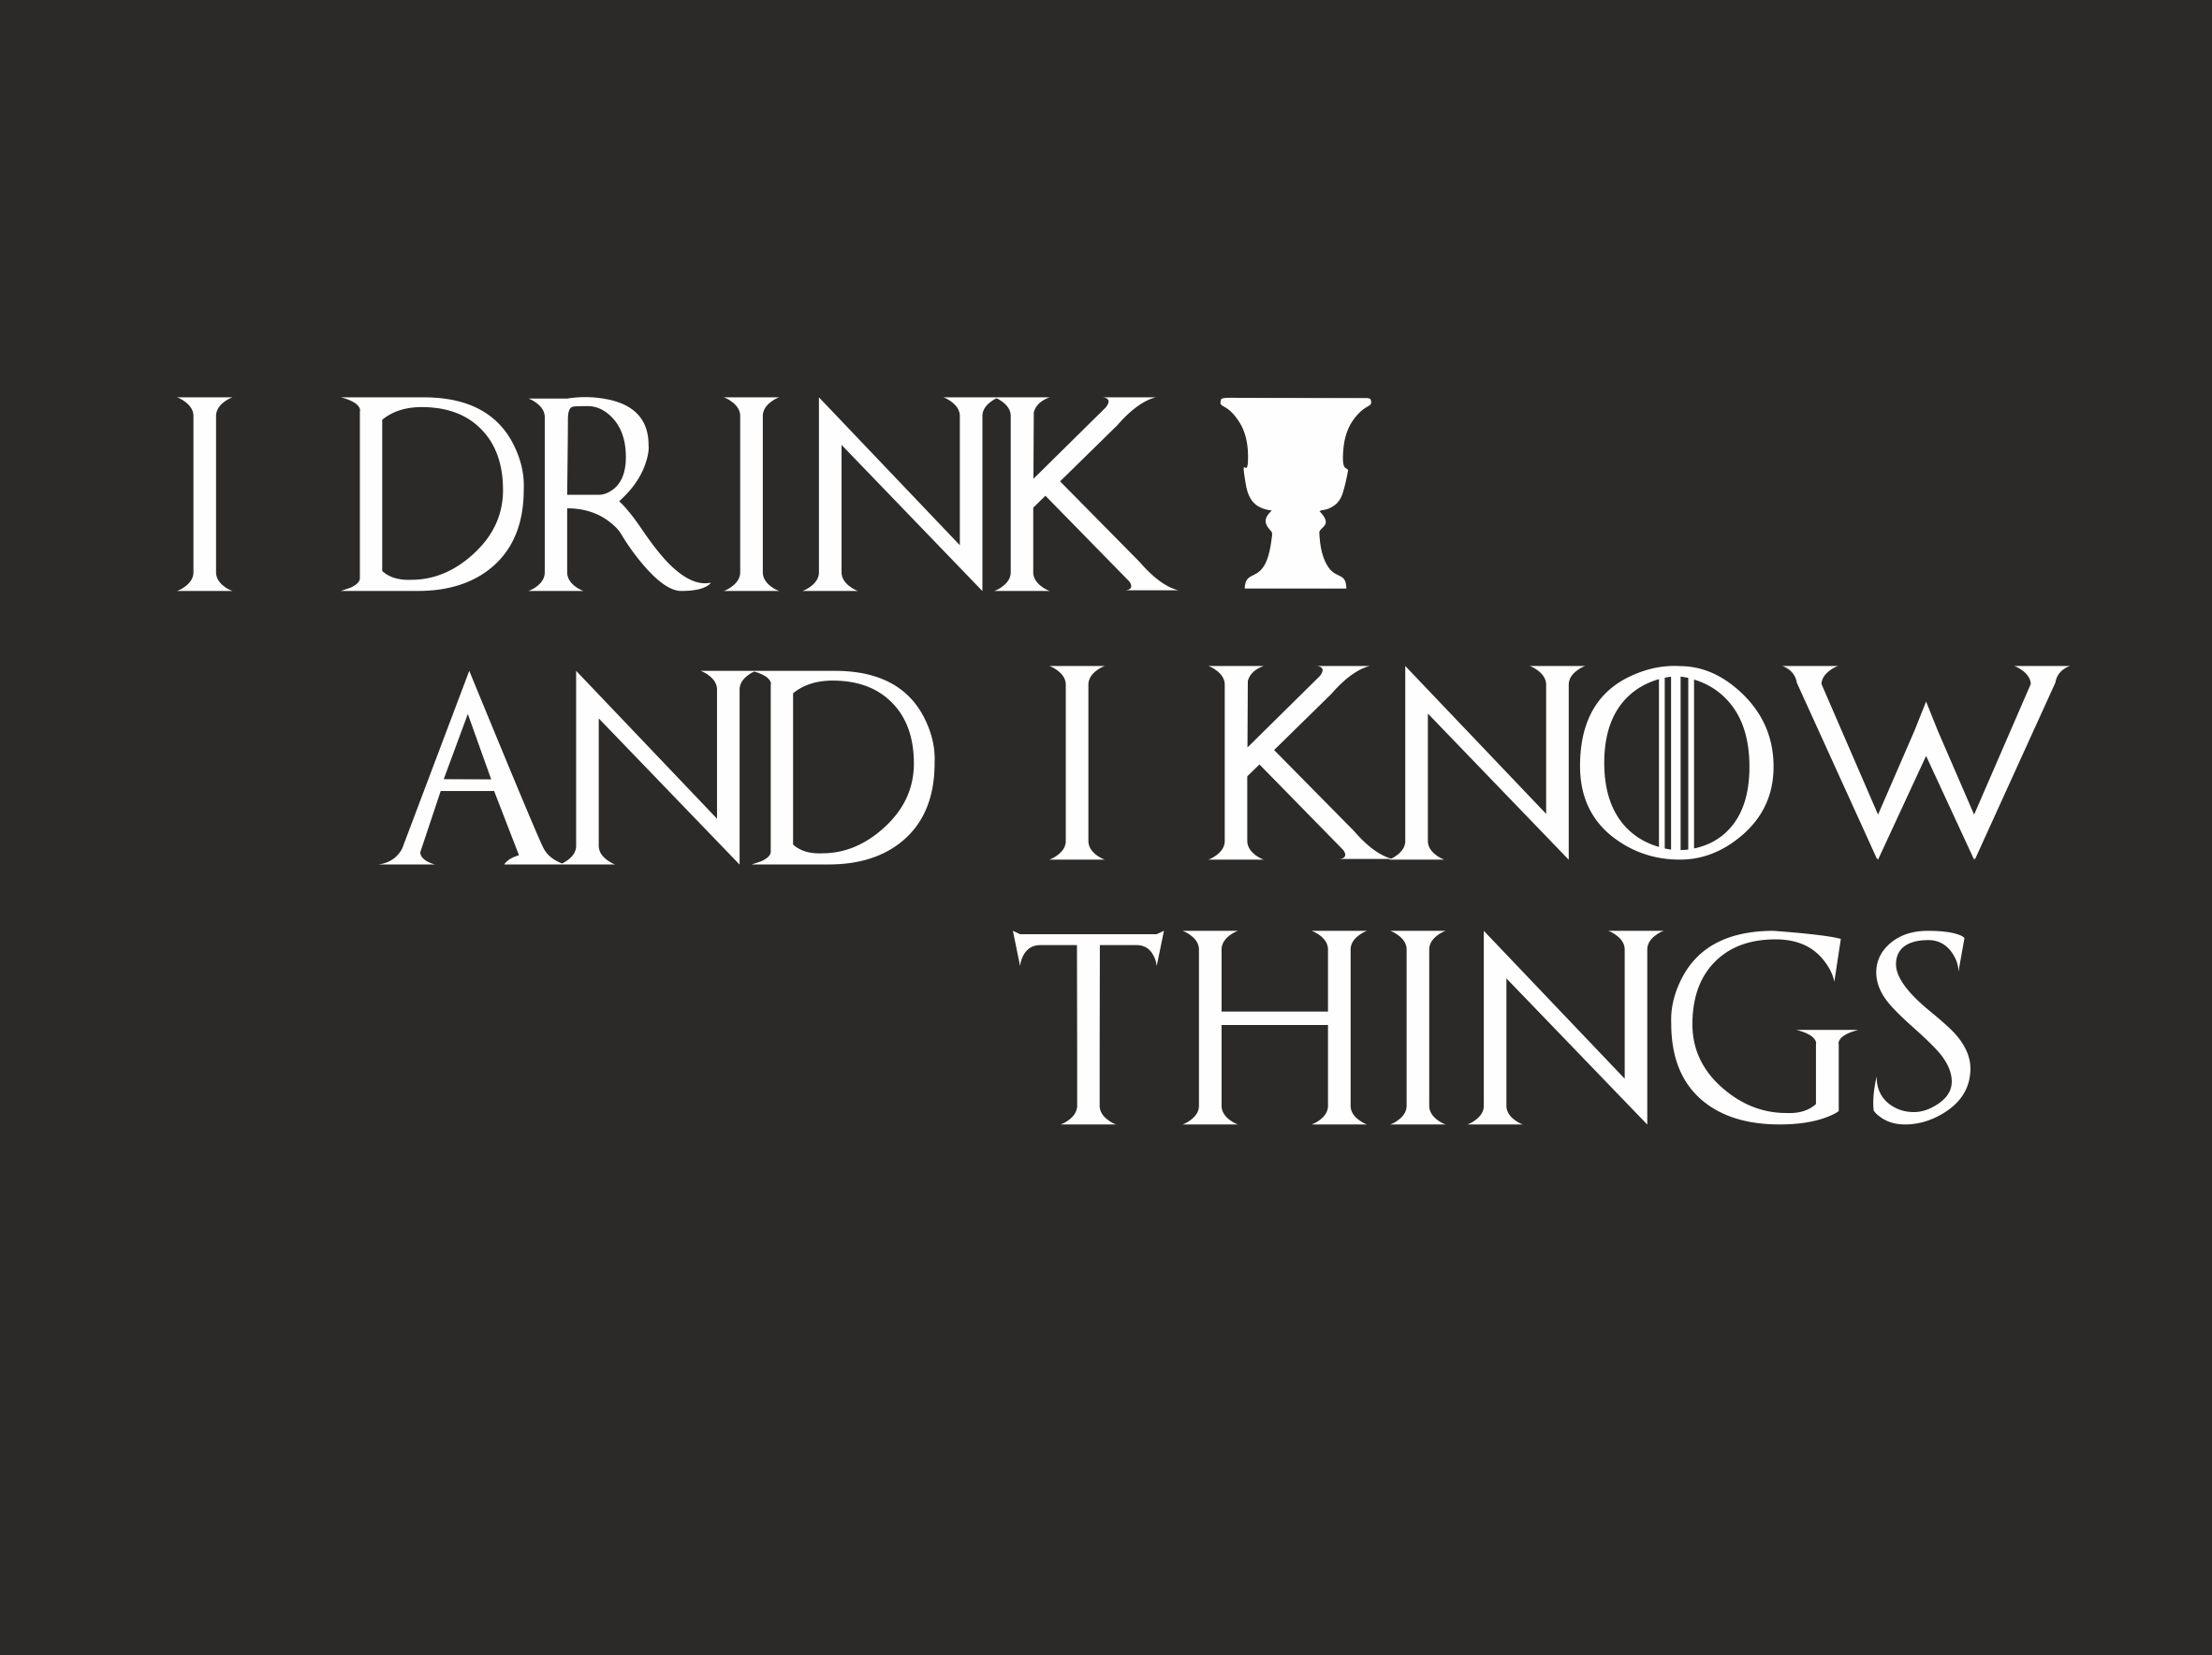 idrinkandiknowthings